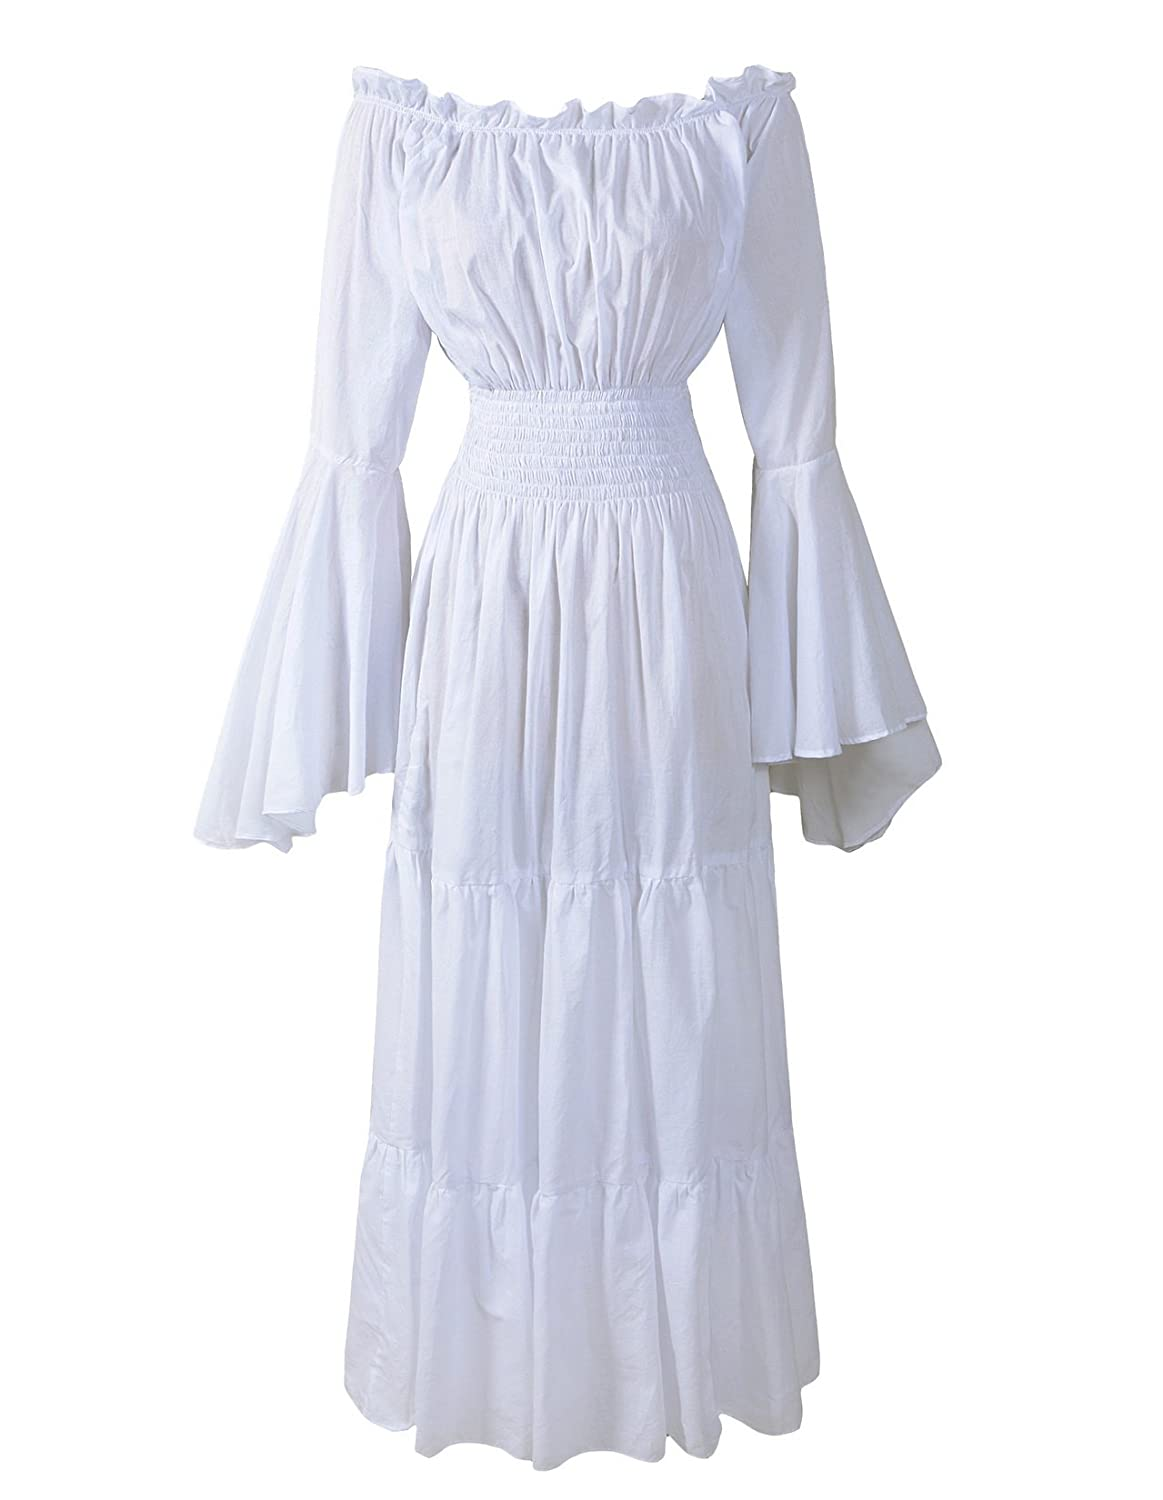 Renaissance Off-Shoulder Trumpet Sleeve White Underdress - DeluxeAdultCostumes.com